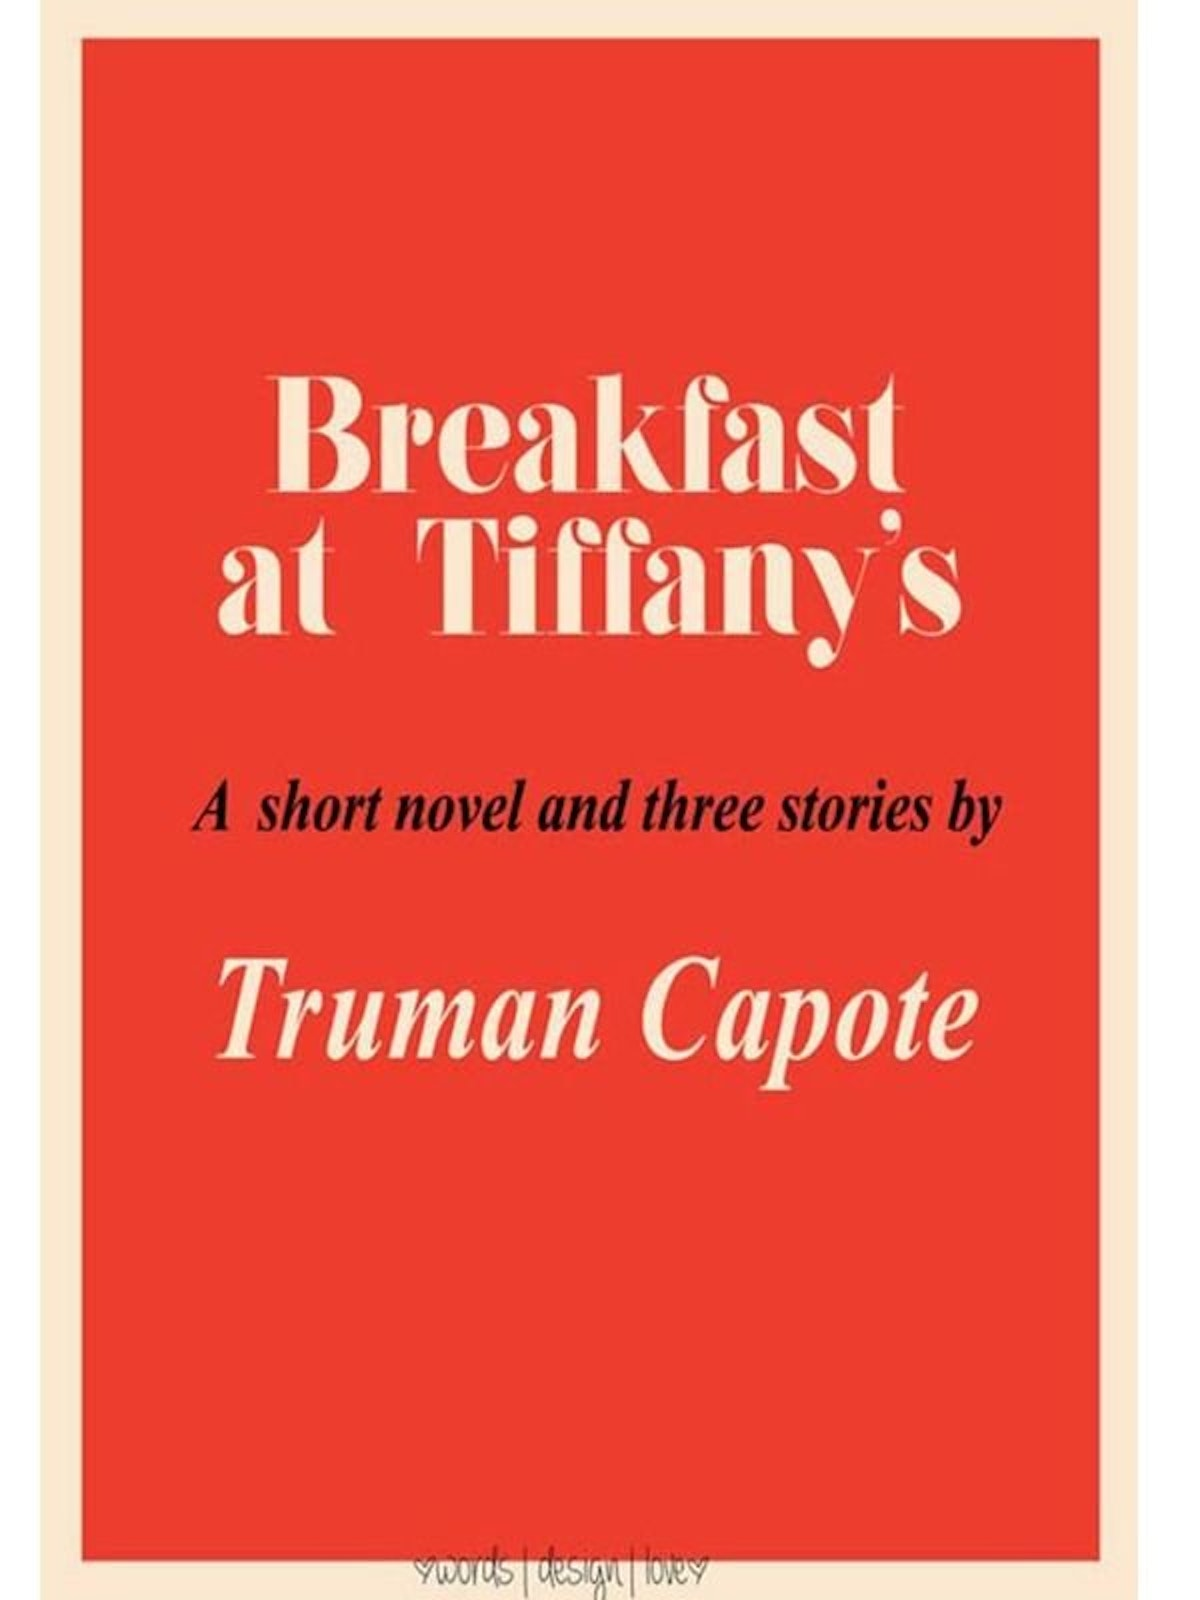 a plot and character analysis of truman capotes novel breakfast The spirited heroine of truman capote's most famous book is a bewitching blend of many different characters, including of breakfast at tiffany's by truman.